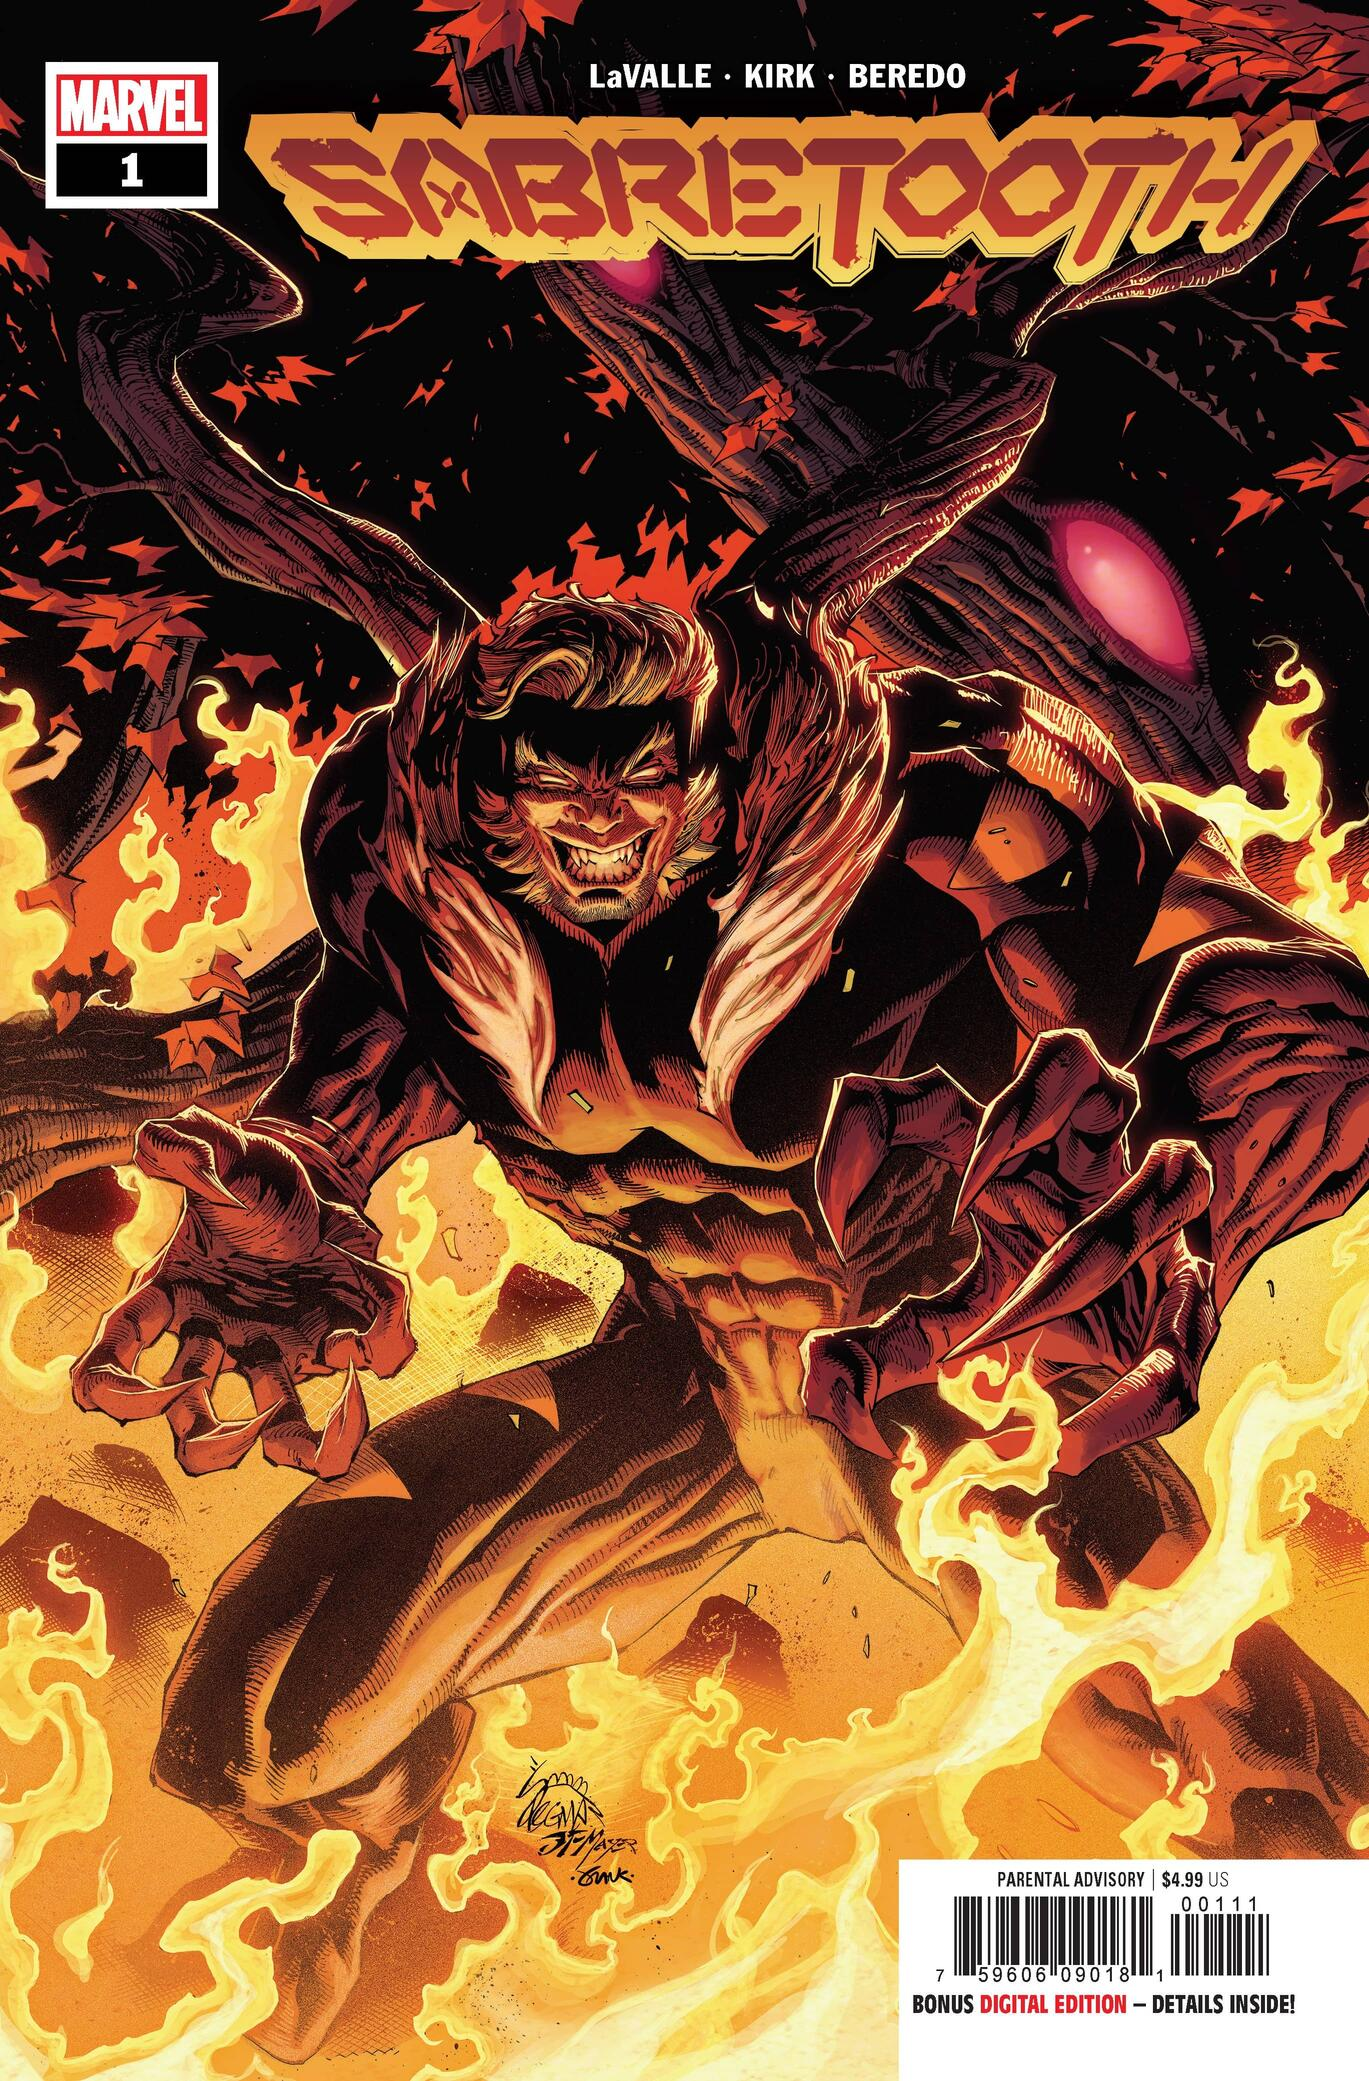 SABRETOOTH #1 Cover by Ryan Stegman, JP Mayer, and Frank Martin